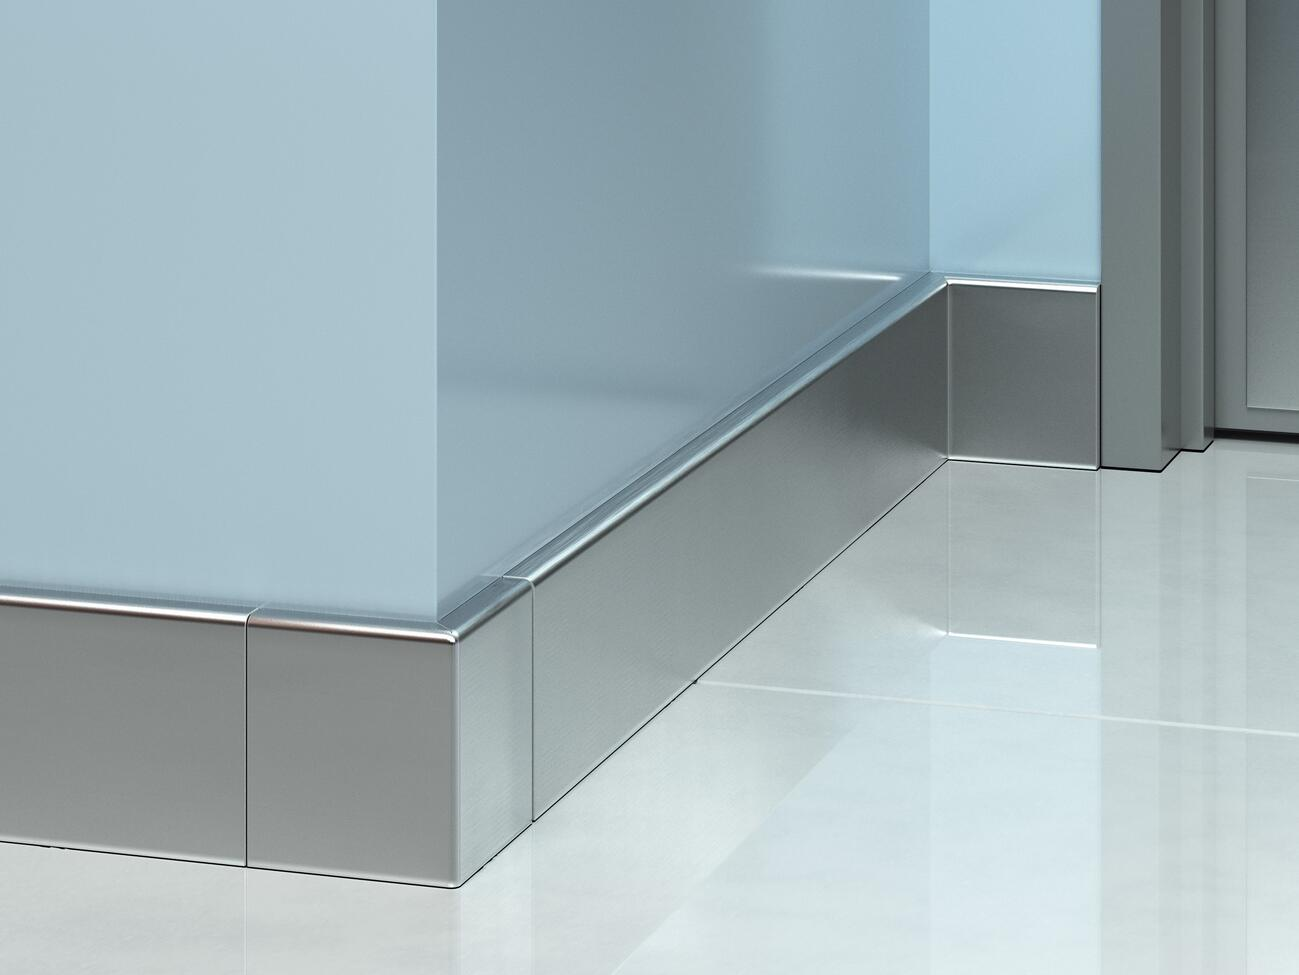 BBS-4SS Stainless Steel Baseboard